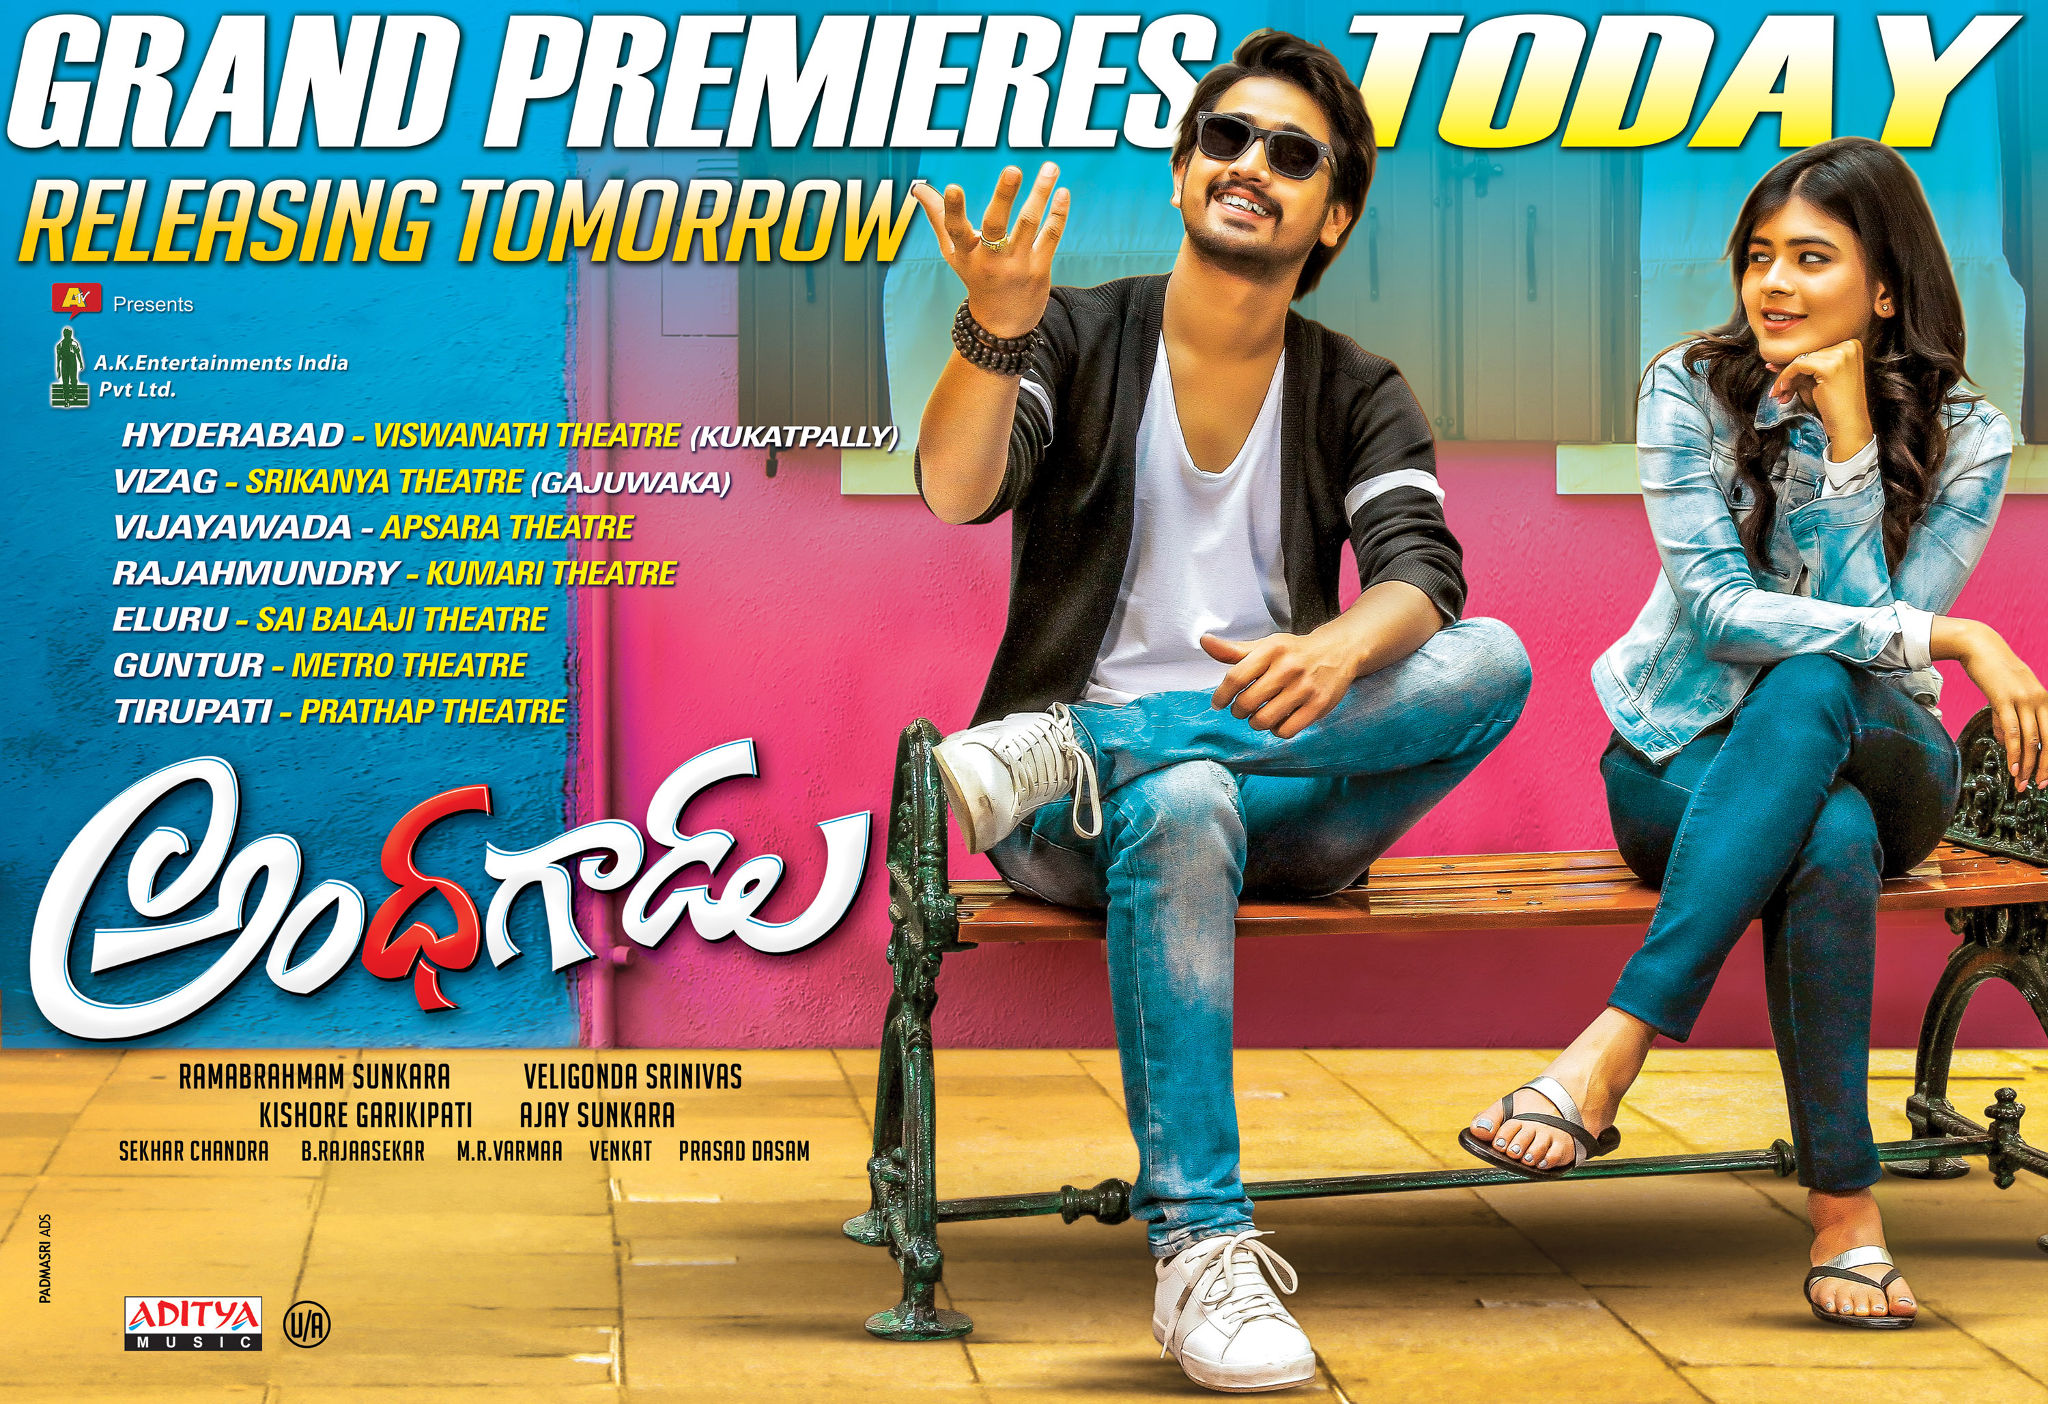 Raj Tarun Hebah Patel Andhhagadu Premiere Today Wallpapers